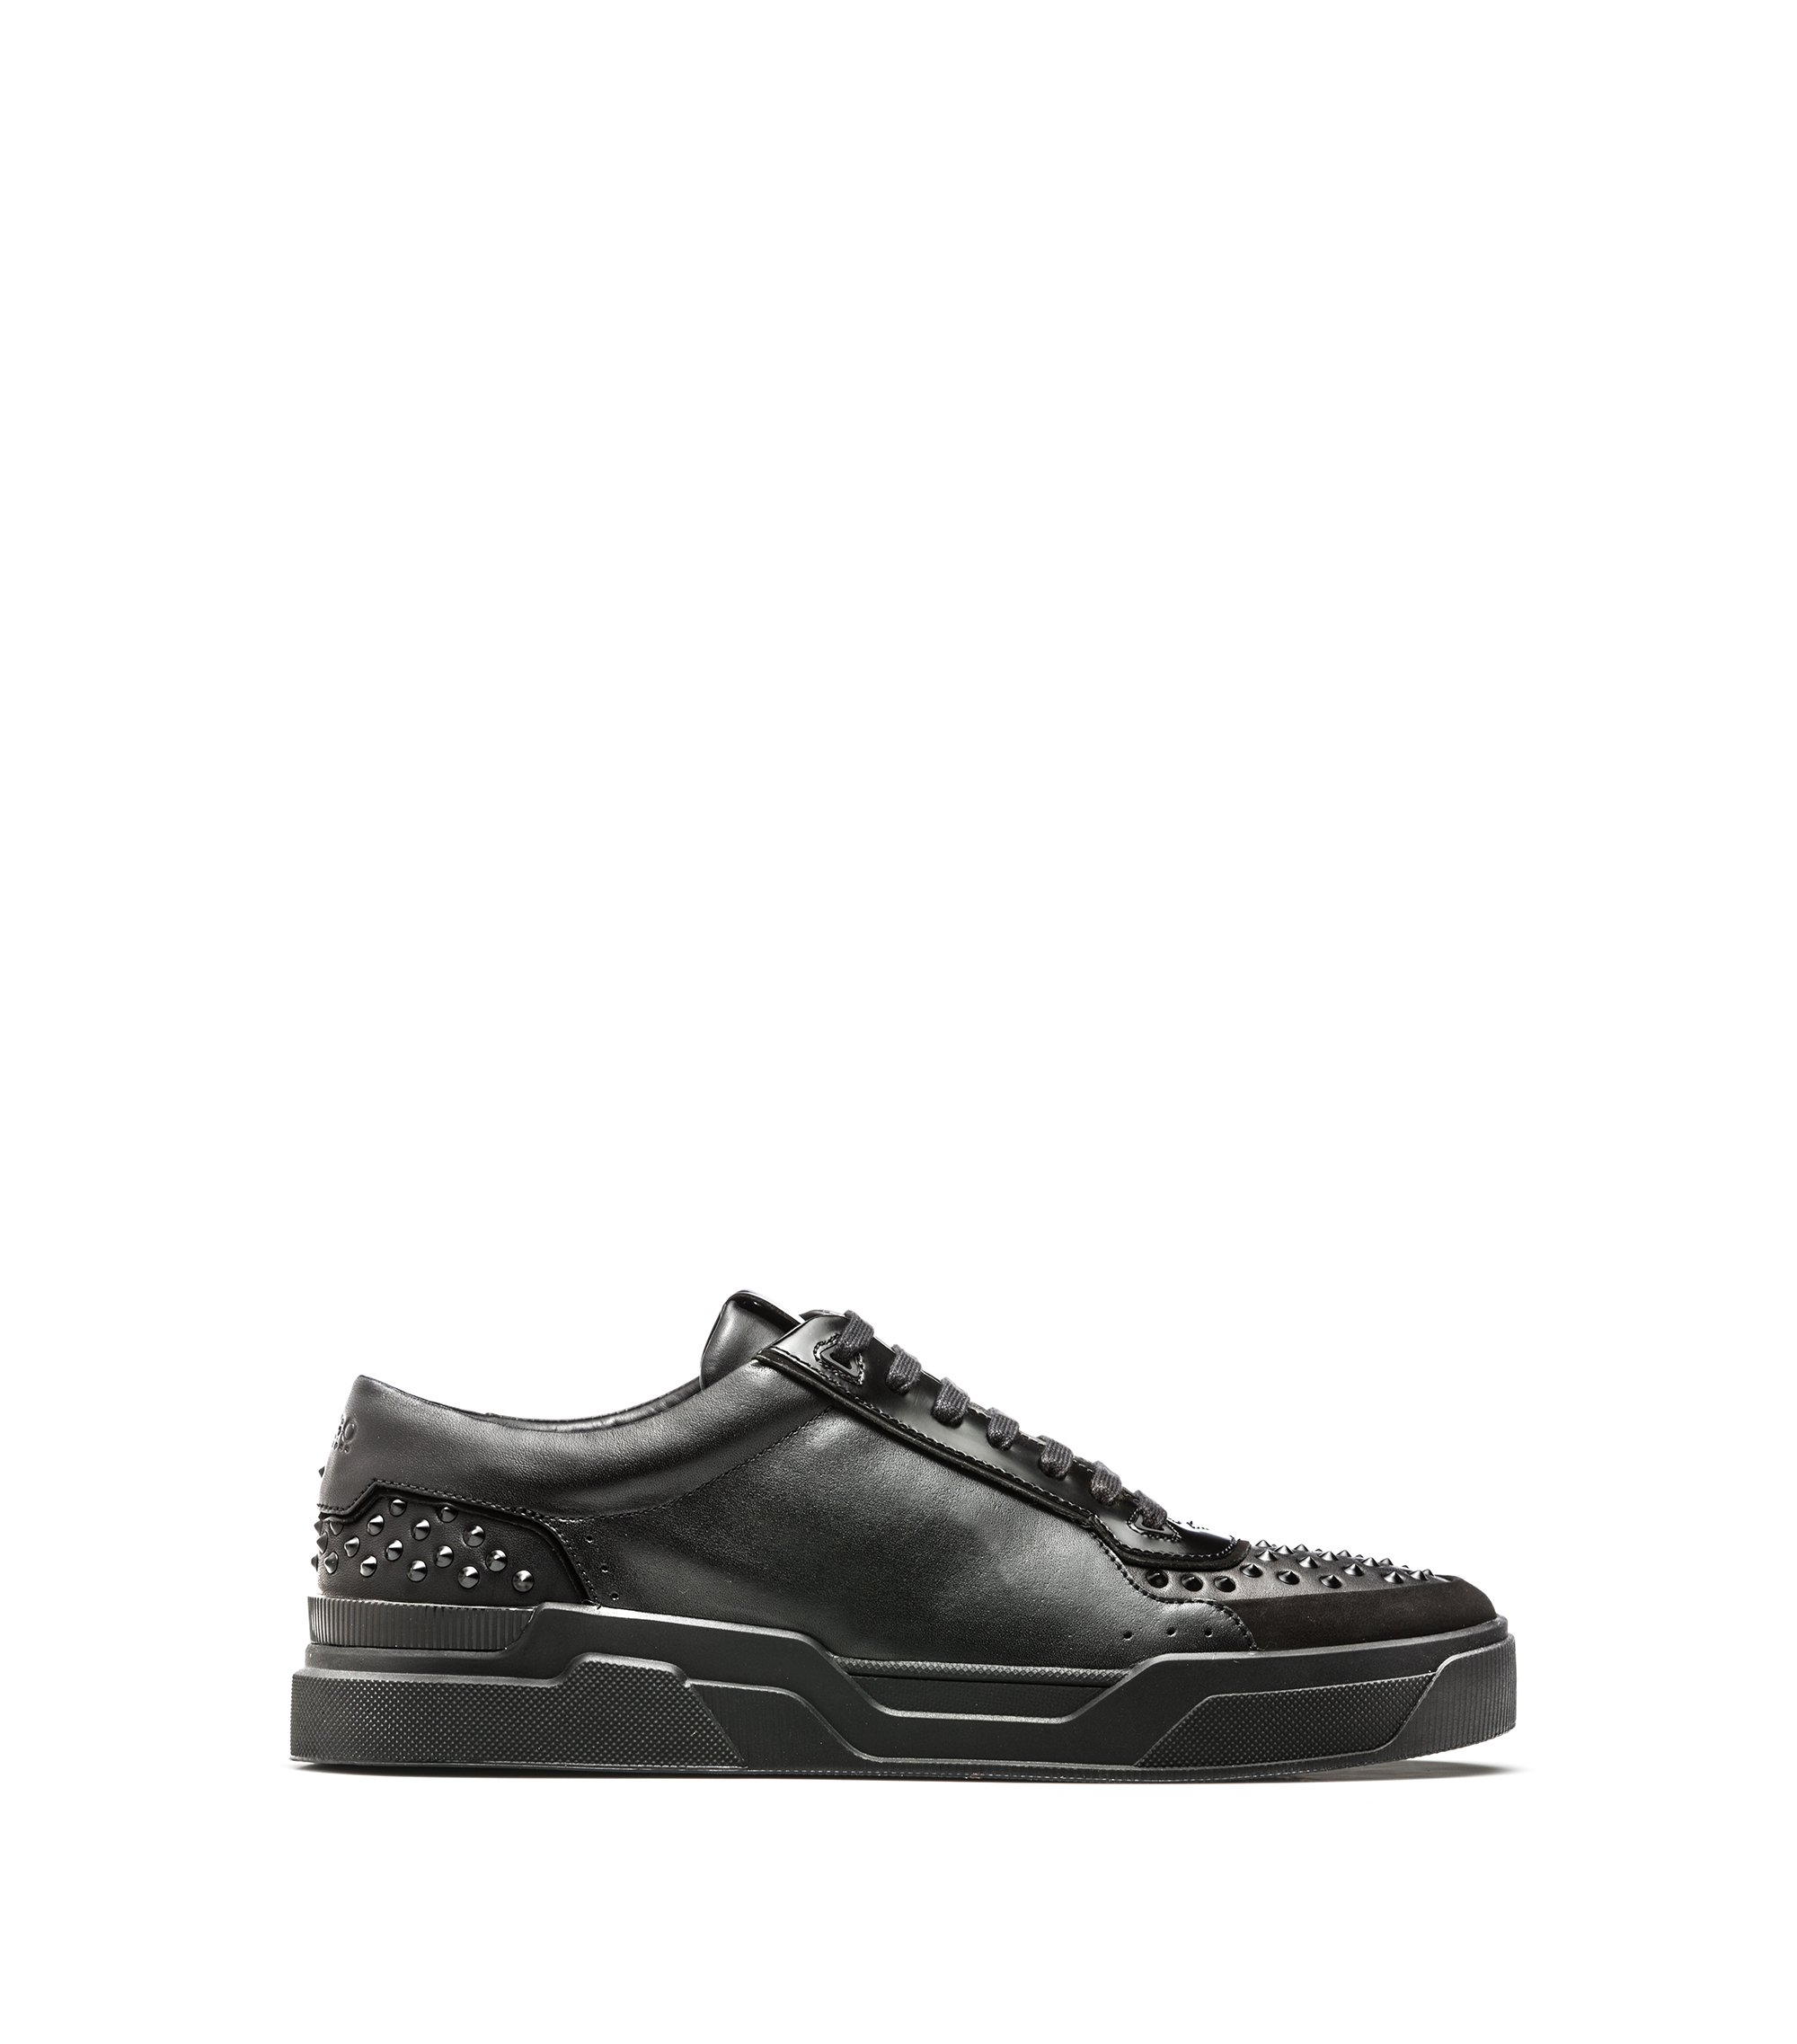 Sneakers in pelle di vitello con borchie decorative, Nero